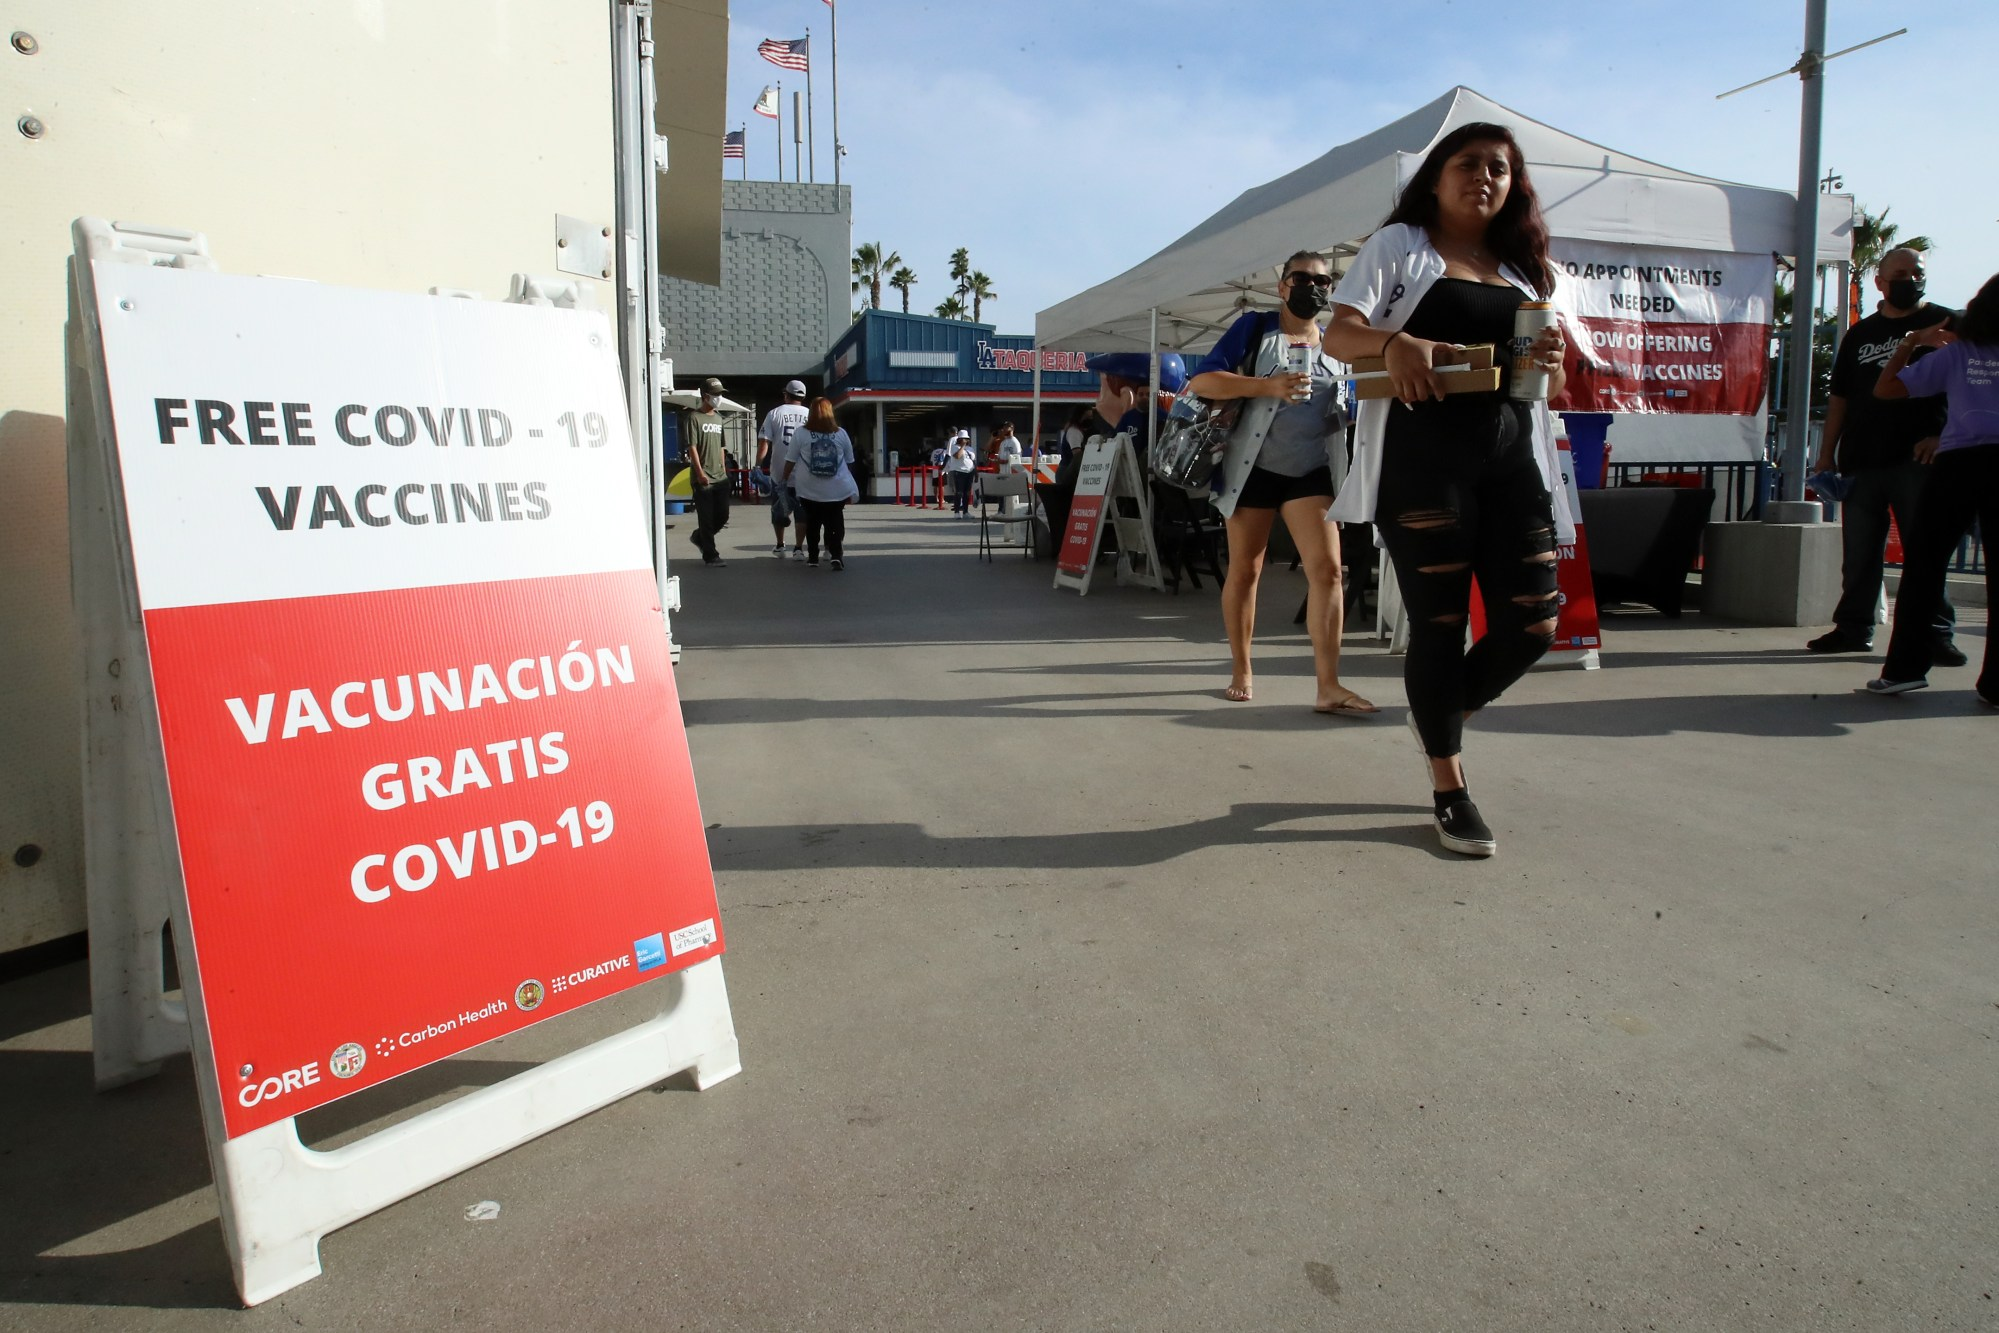 Fans walk past a COVID-19 vaccination tent before the game between the Los Angeles Dodgers and the San Francisco Giants at Dodger Stadium on July 22, 2021. (Katelyn Mulcahy/Getty Images)